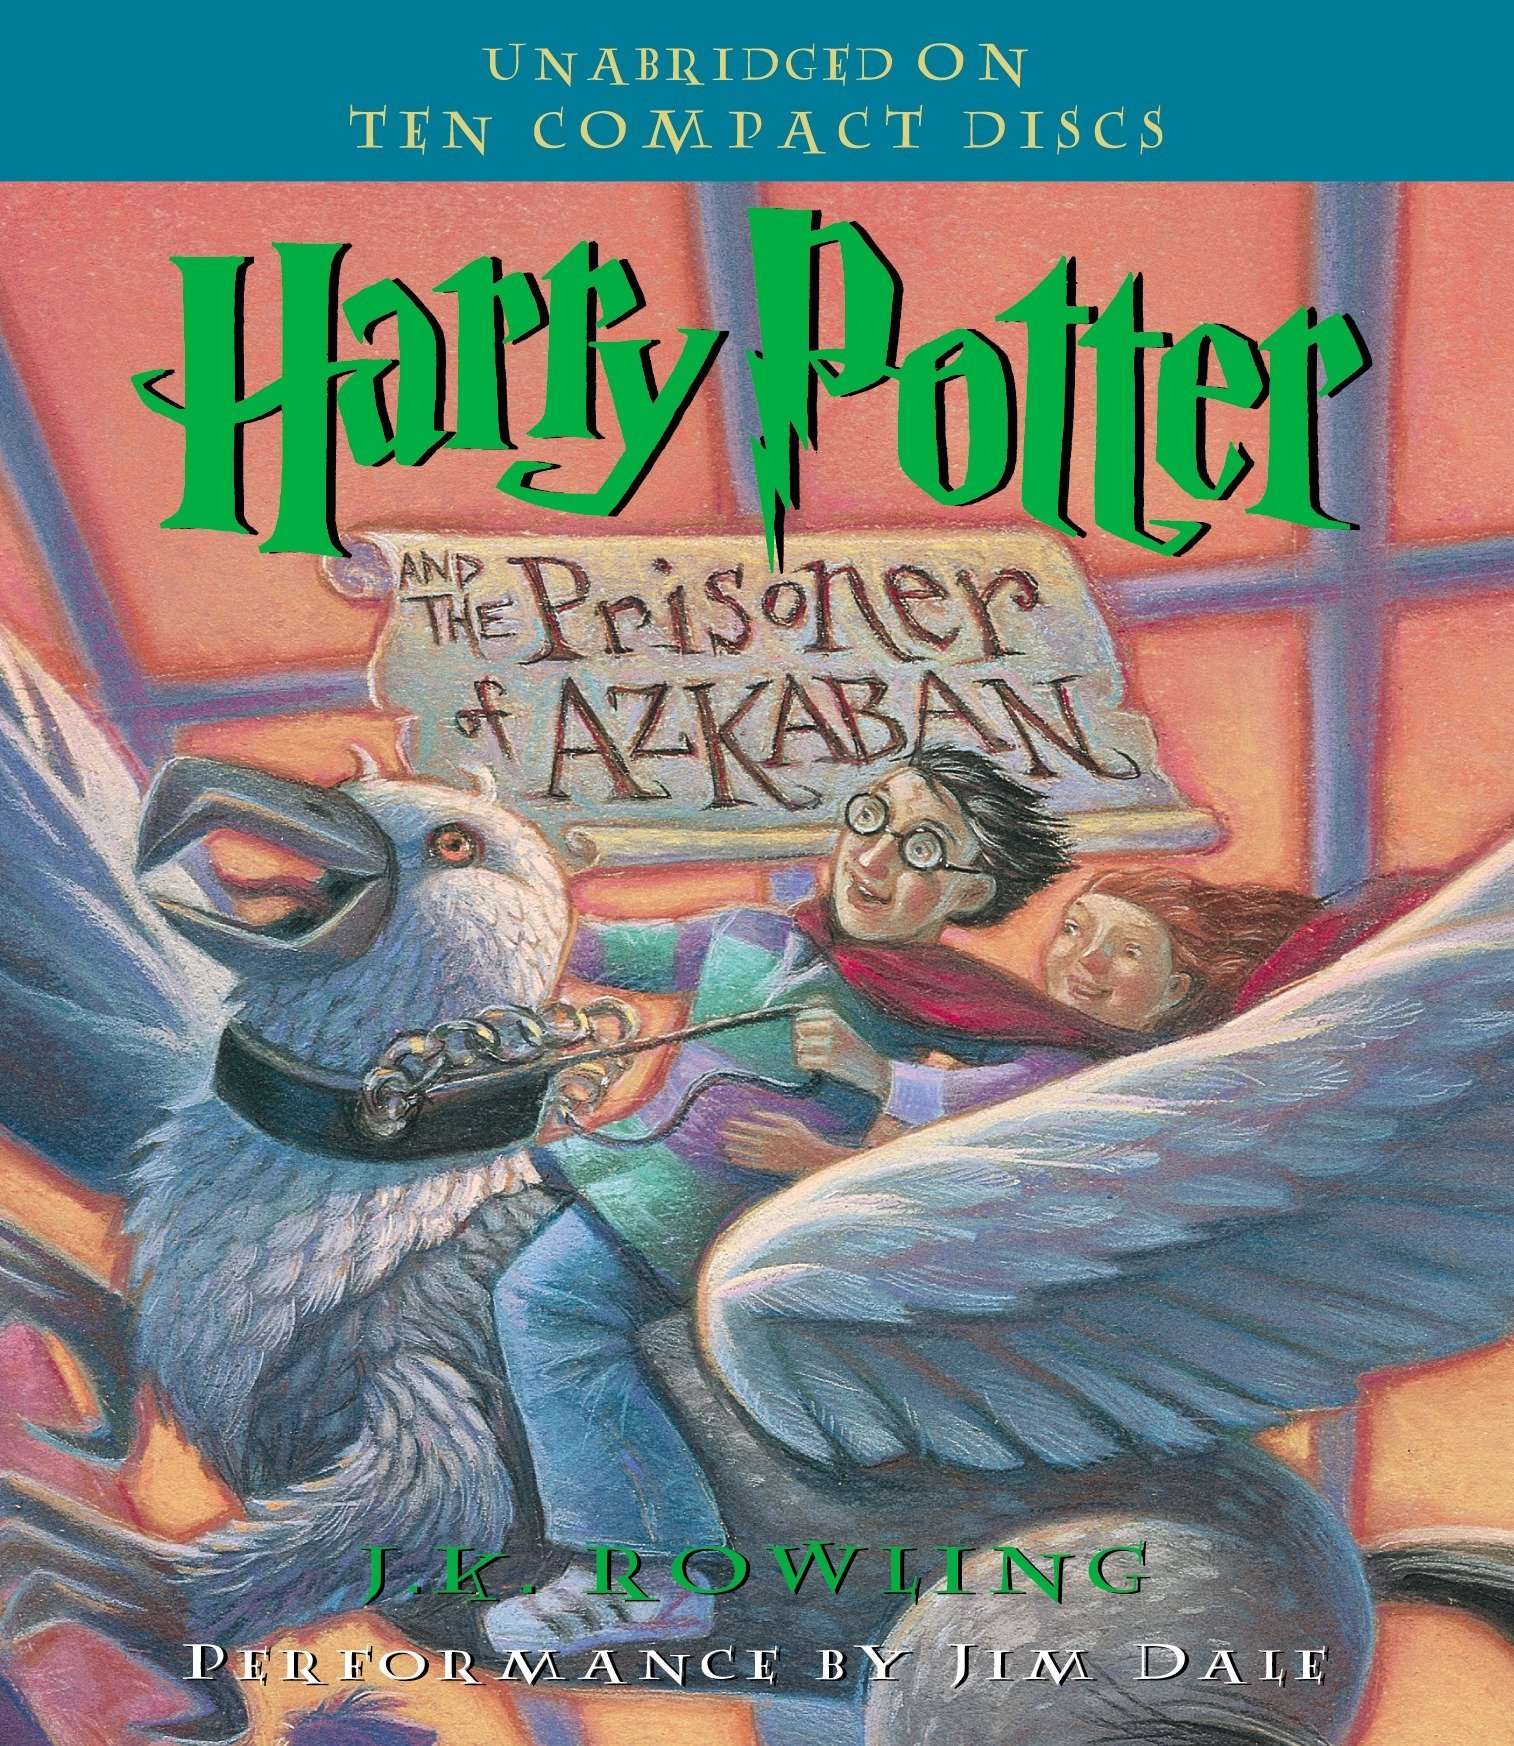 Harry Potter and the Prisoner of Azkaban (Book 3) by Listening Library (Audio) (Image #1)